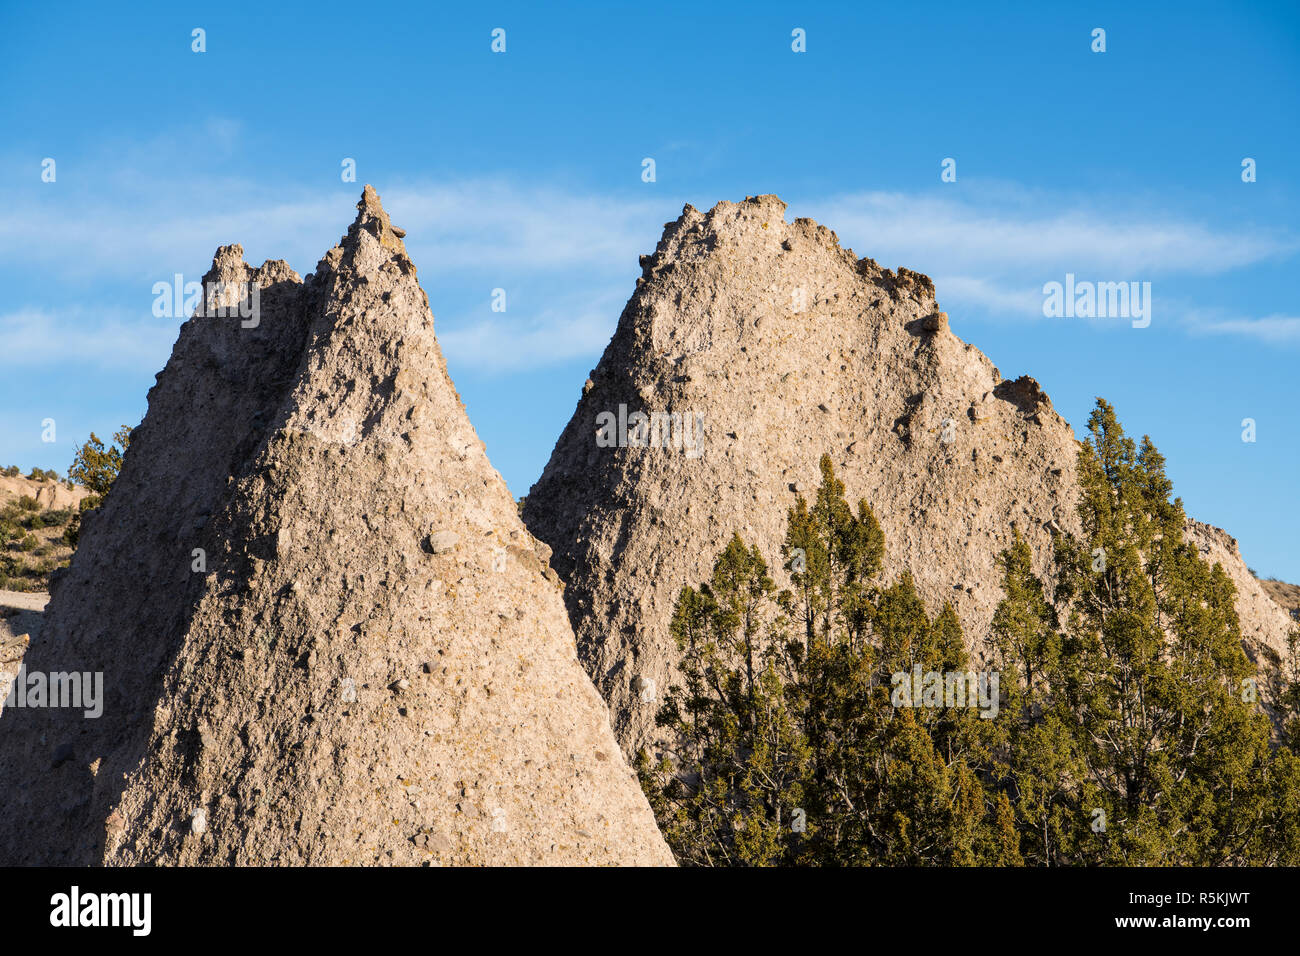 Sharp peaks of two highly textured rock formations at Kasha-Katuwe Tent Rocks National Monument, New Mexico - Stock Image